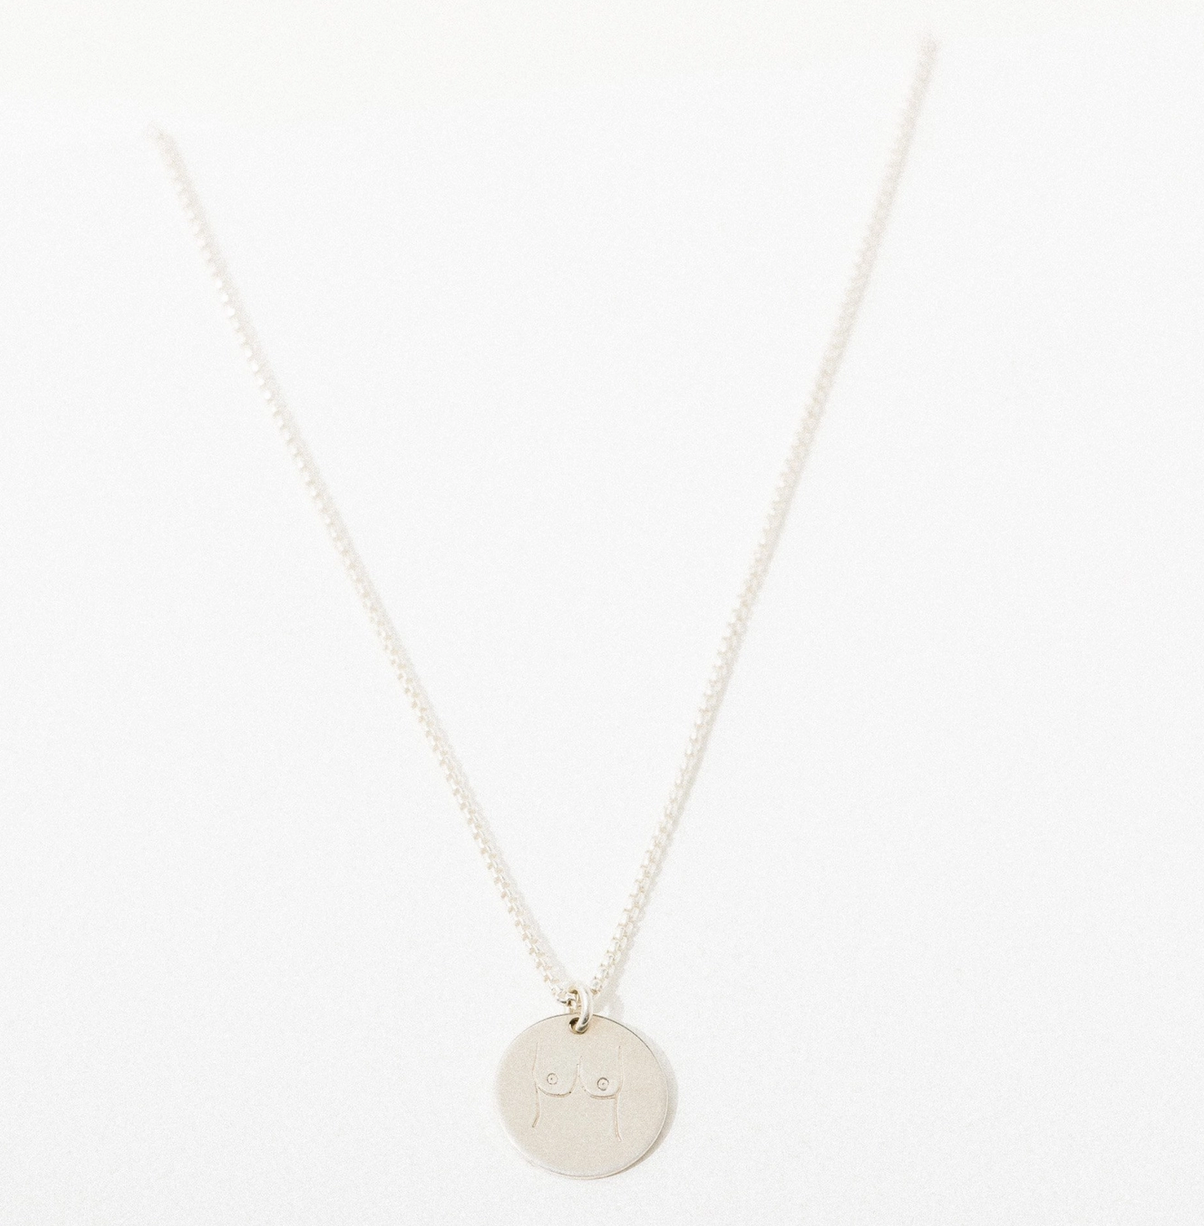 Larissa Loden Boobies Pendant Necklace-Sterling Silver